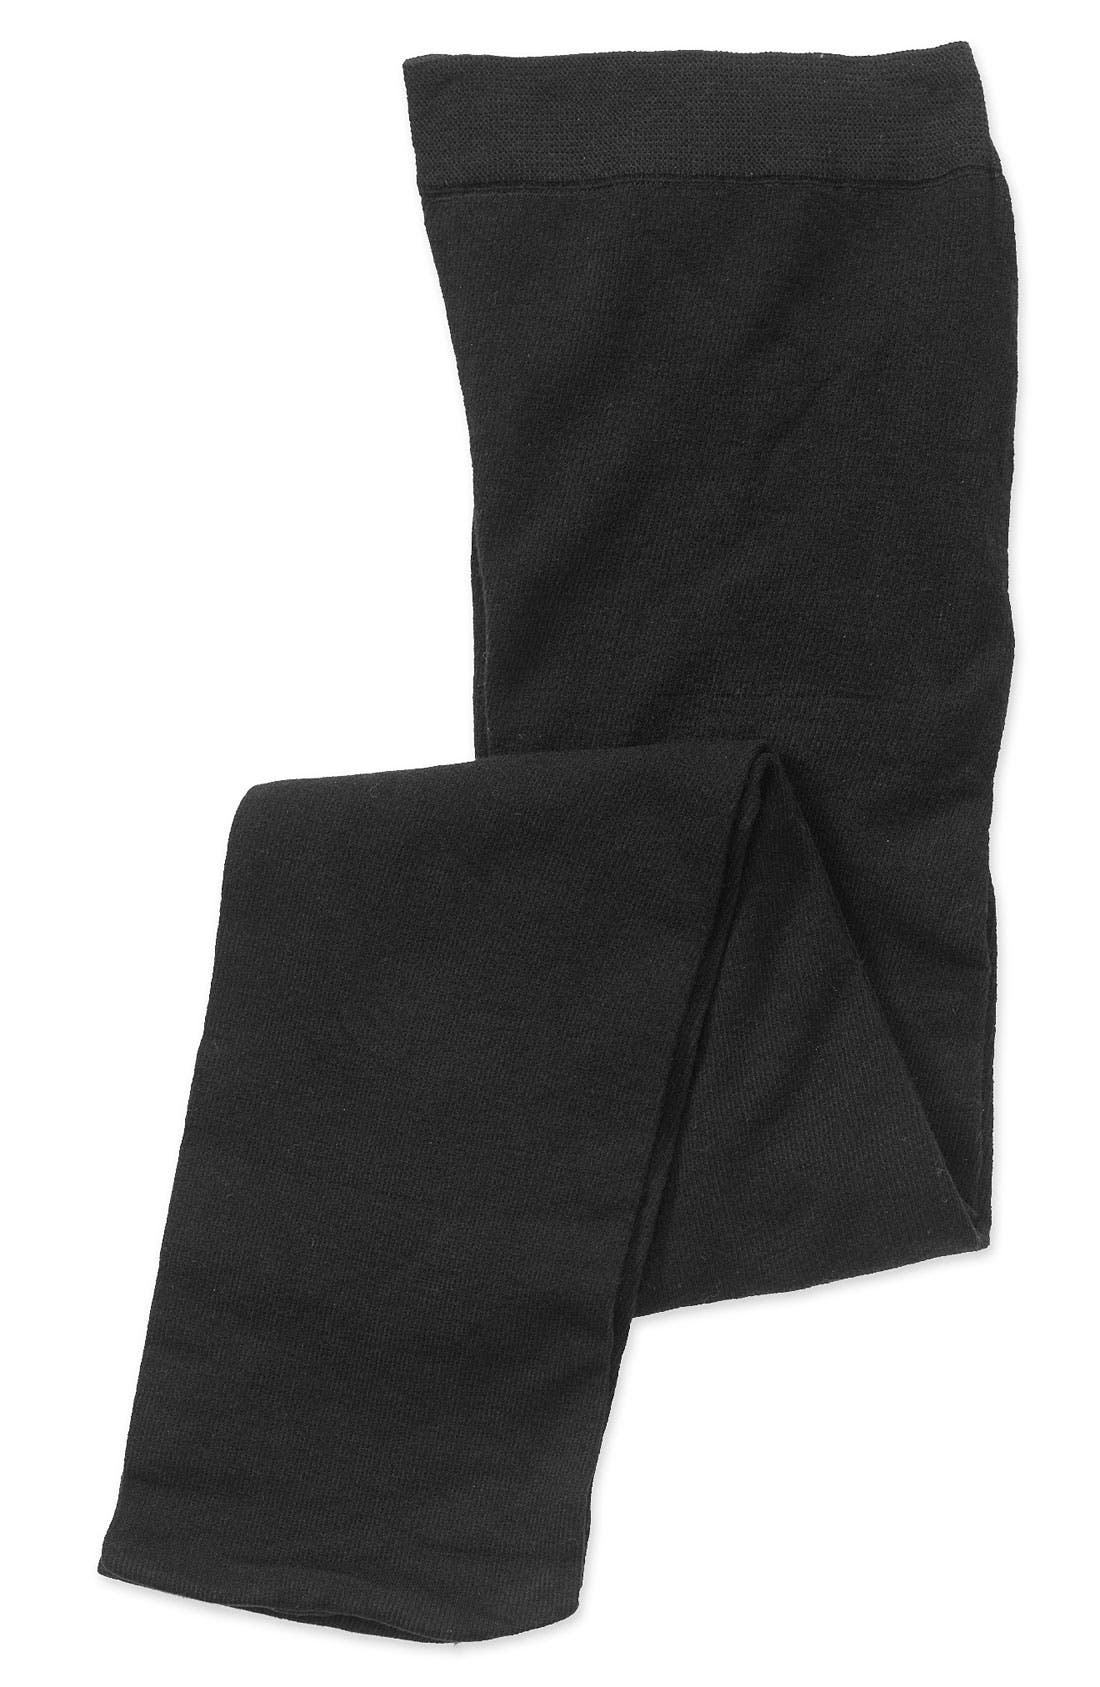 Alternate Image 1 Selected - Nordstrom Cotton Tights (Baby, Toddler, Little Kid & Big Kid) (3 for $21)